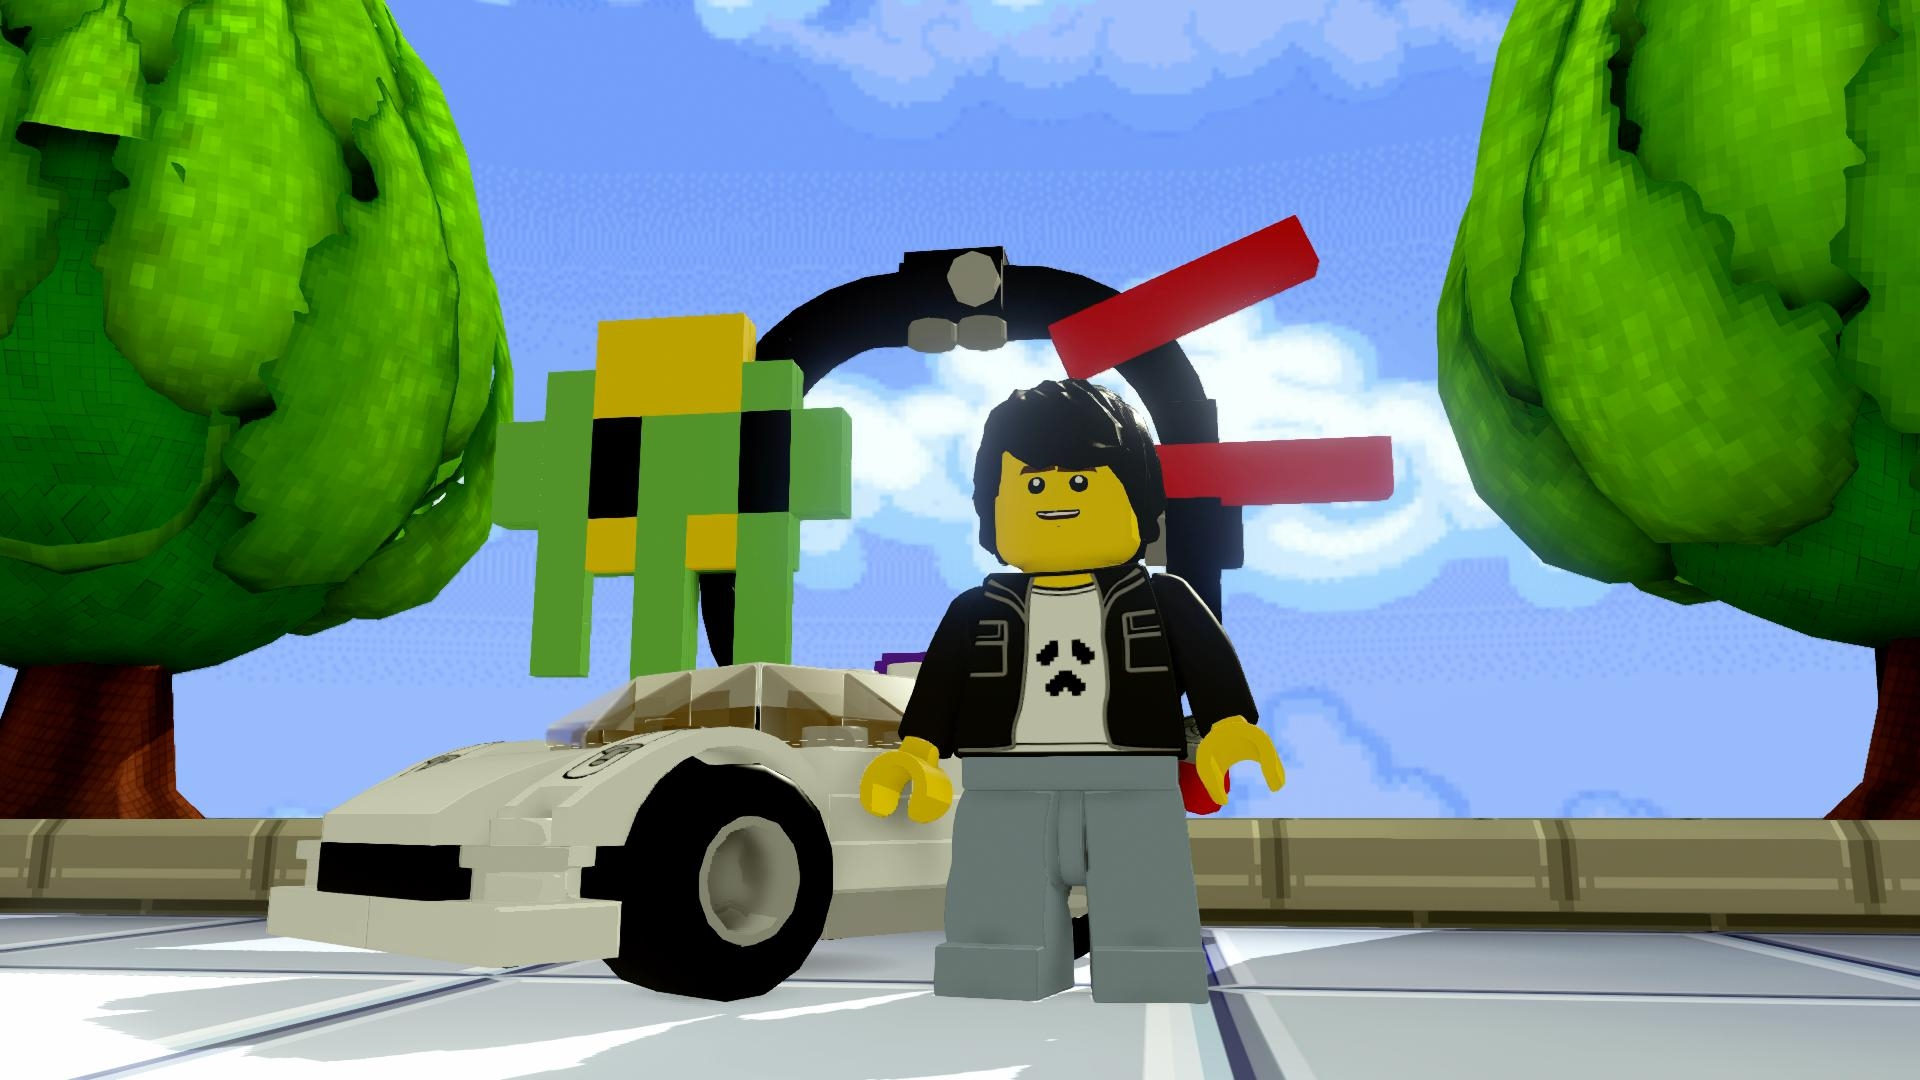 Midway Arcade Level Pack - old meets new meets Lego